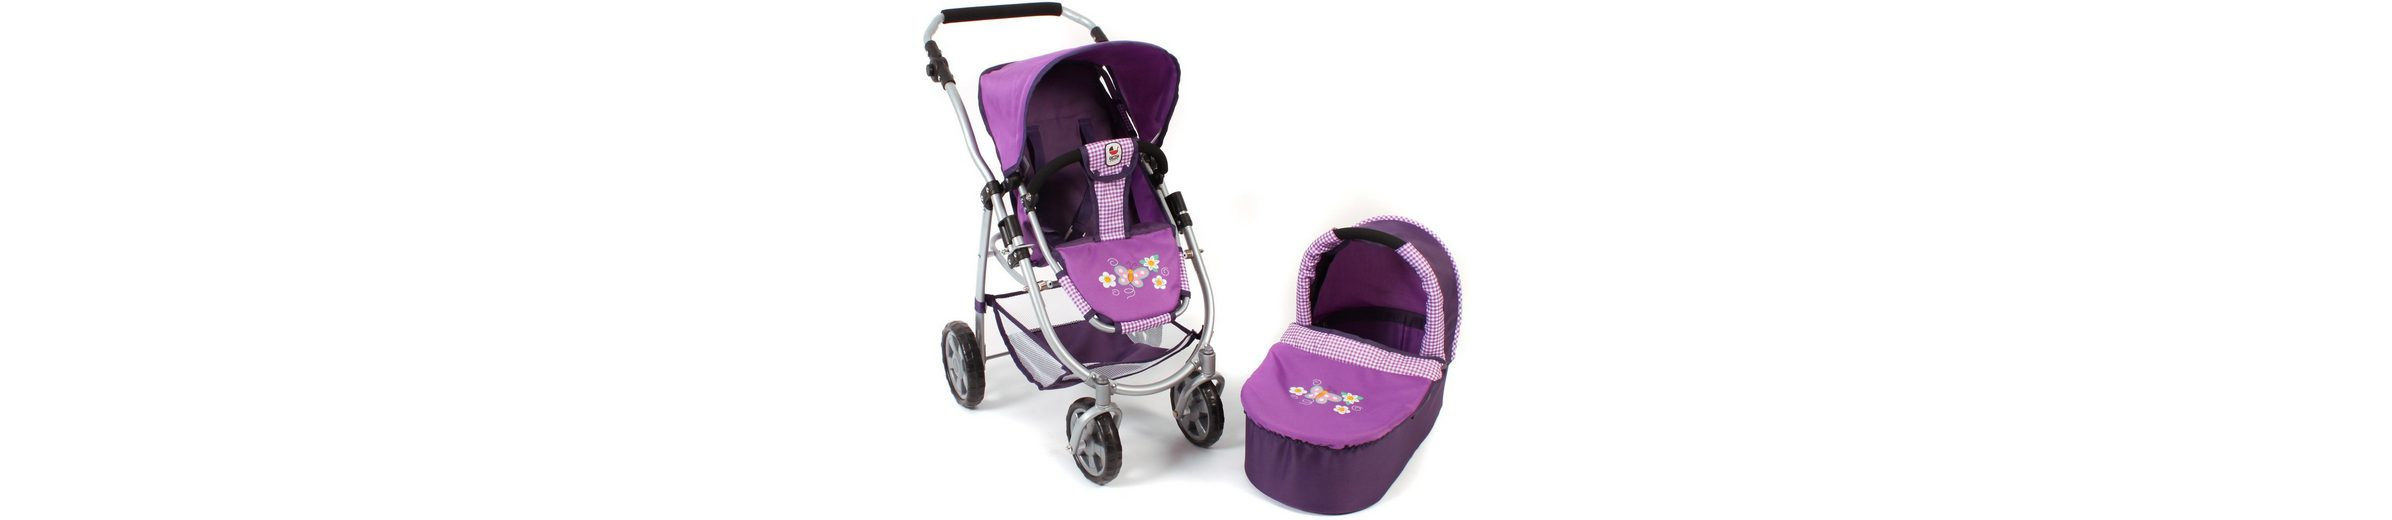 CHIC2000 2 in 1 Puppenwagen Kombi, »EMOTION Purple«